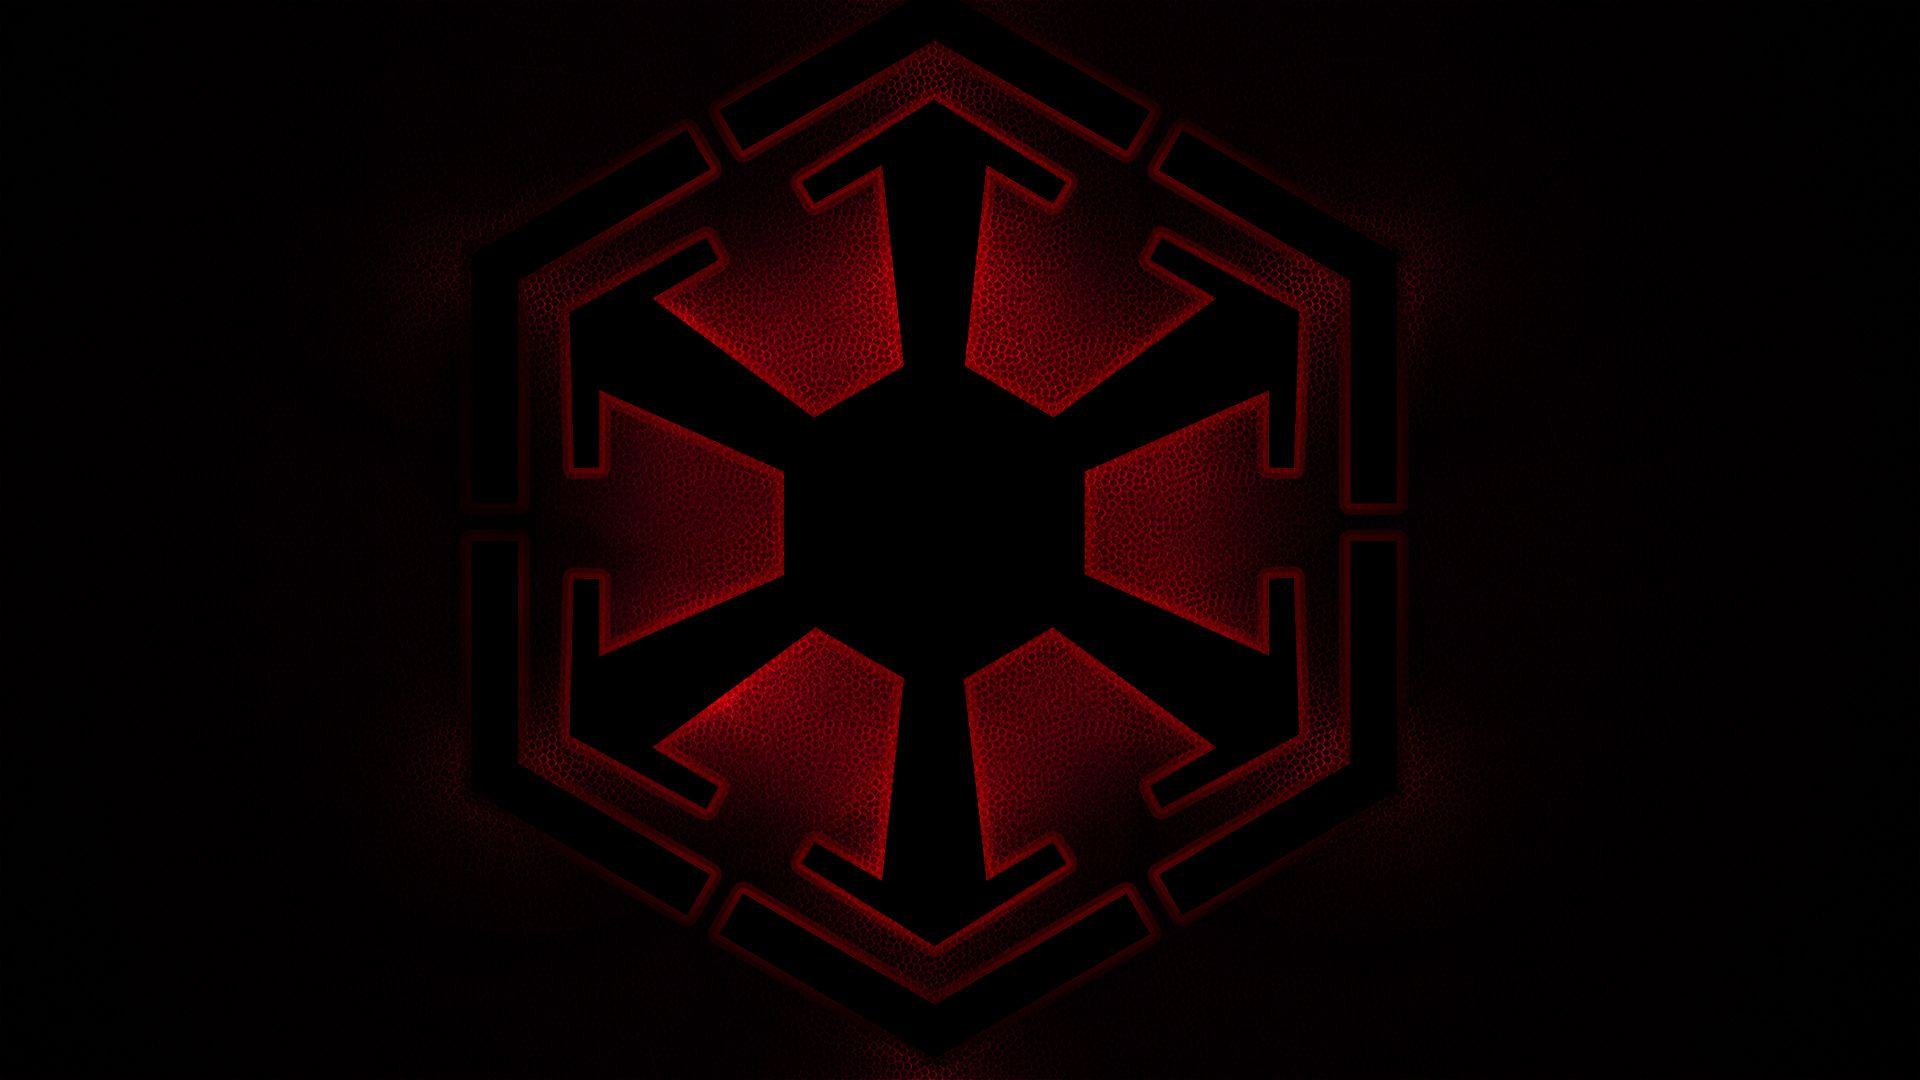 Sith Star Wars Phone Wallpapers Top Free Sith Star Wars